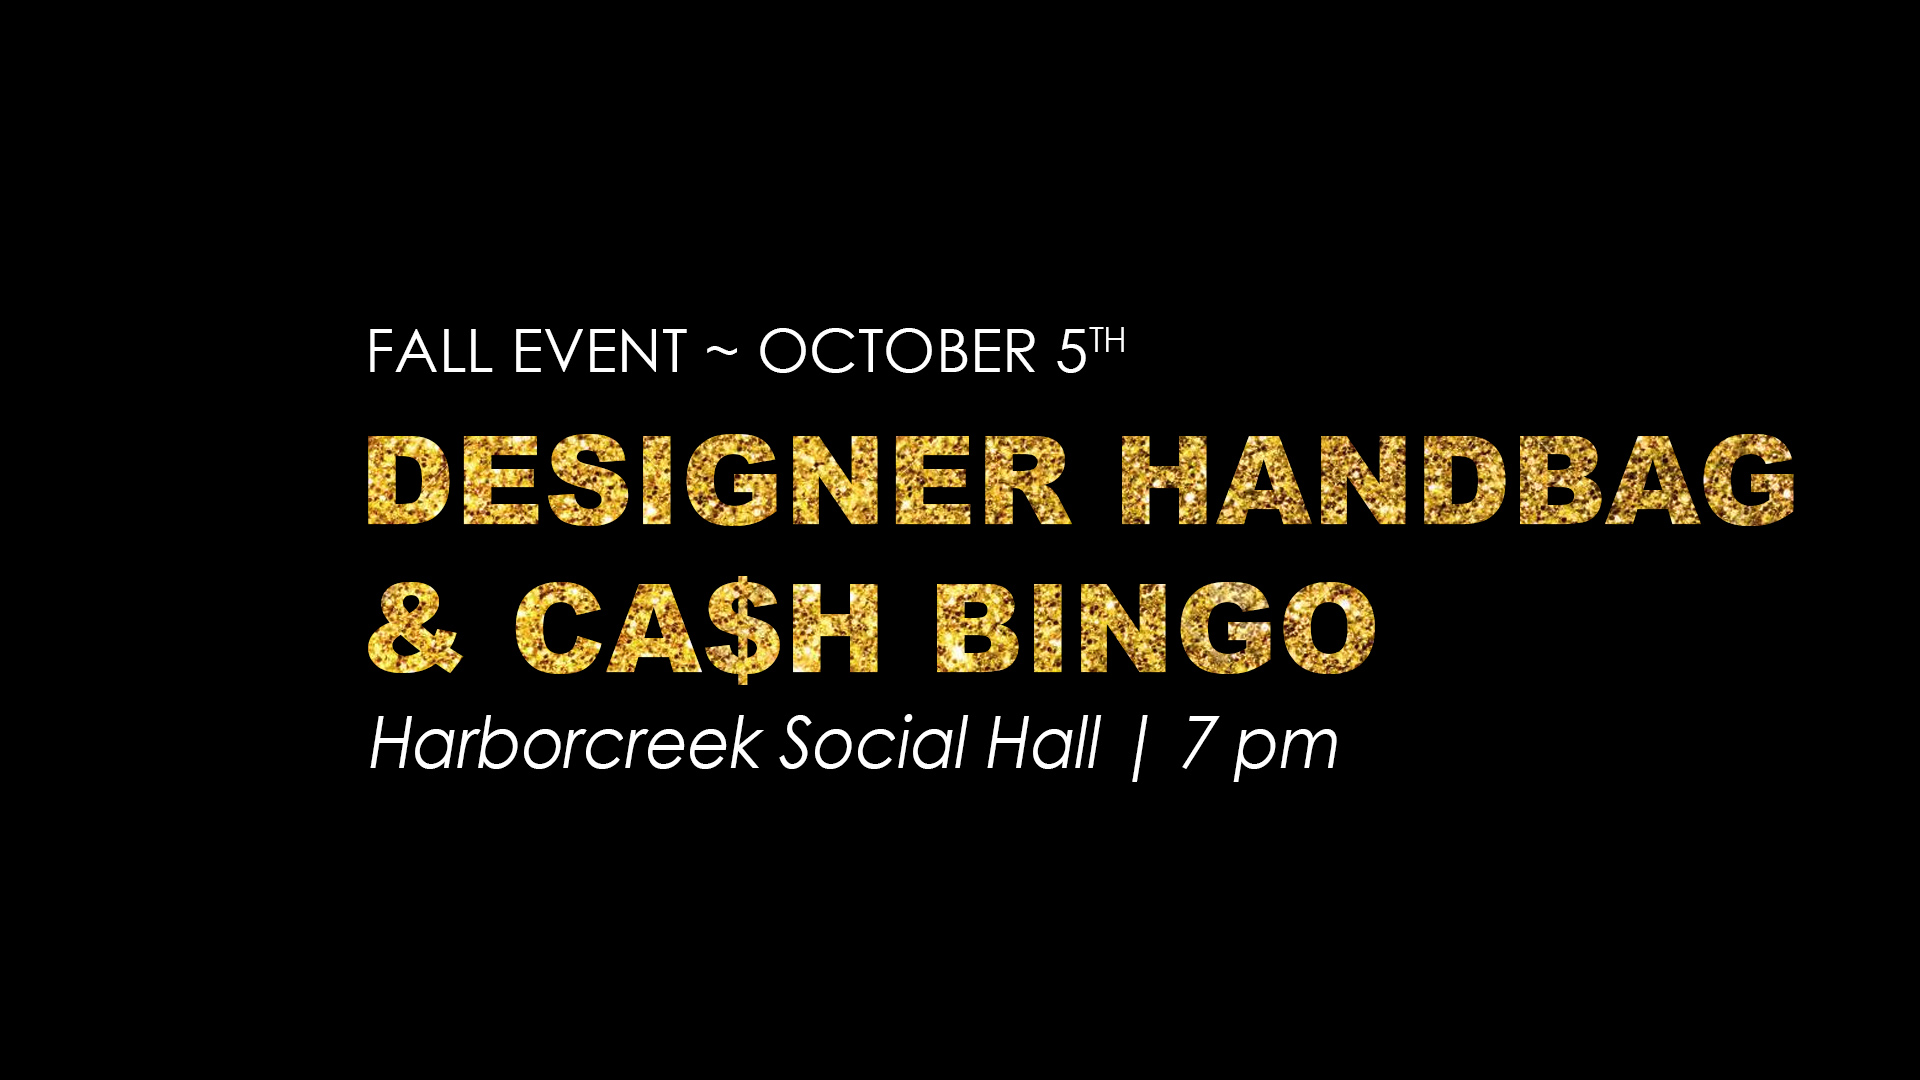 Fall Event. October 5th. Designer handbag and cash bingo. Harborcreek Social Hall. 7pm.